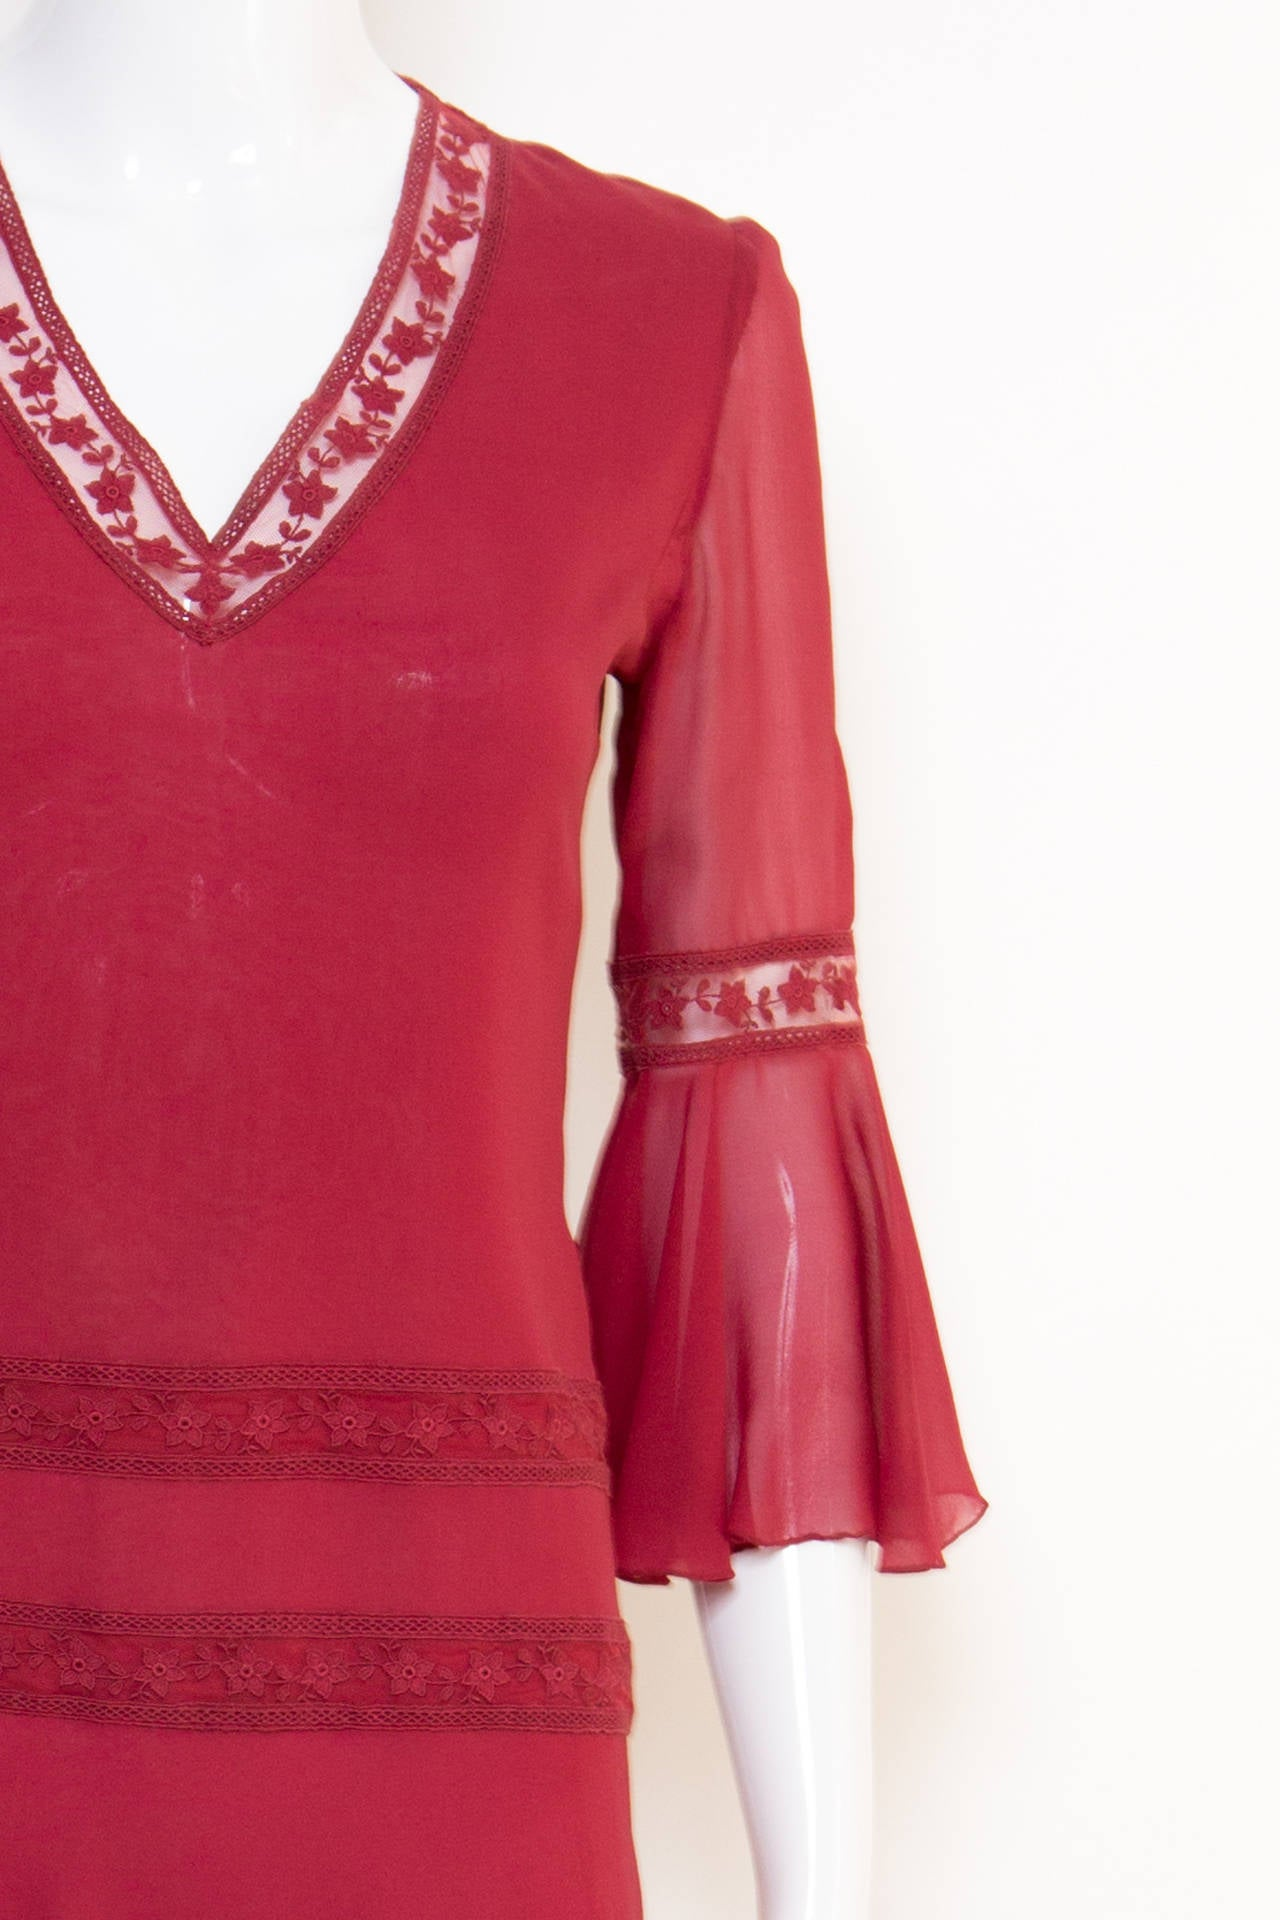 1970s Valentino Red  Wine Cocktail Dress 5